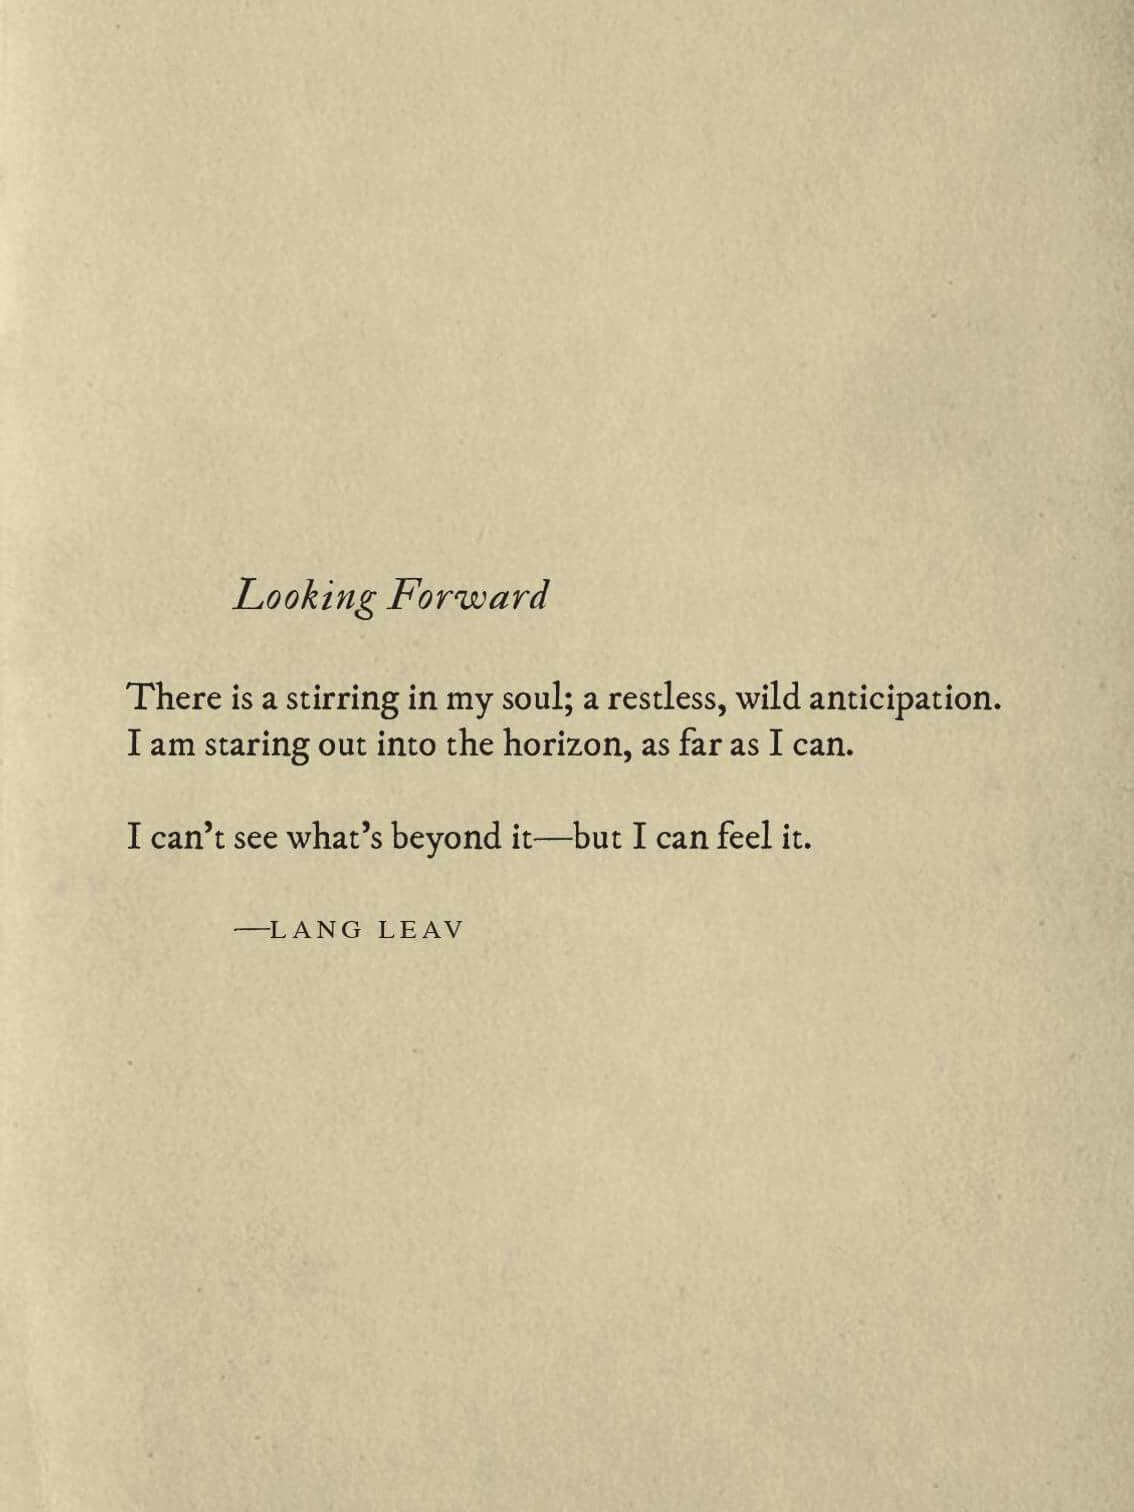 Looking Forward Quotes Looking Forward Langleav  Forward  Pinterest  Wisdom Move